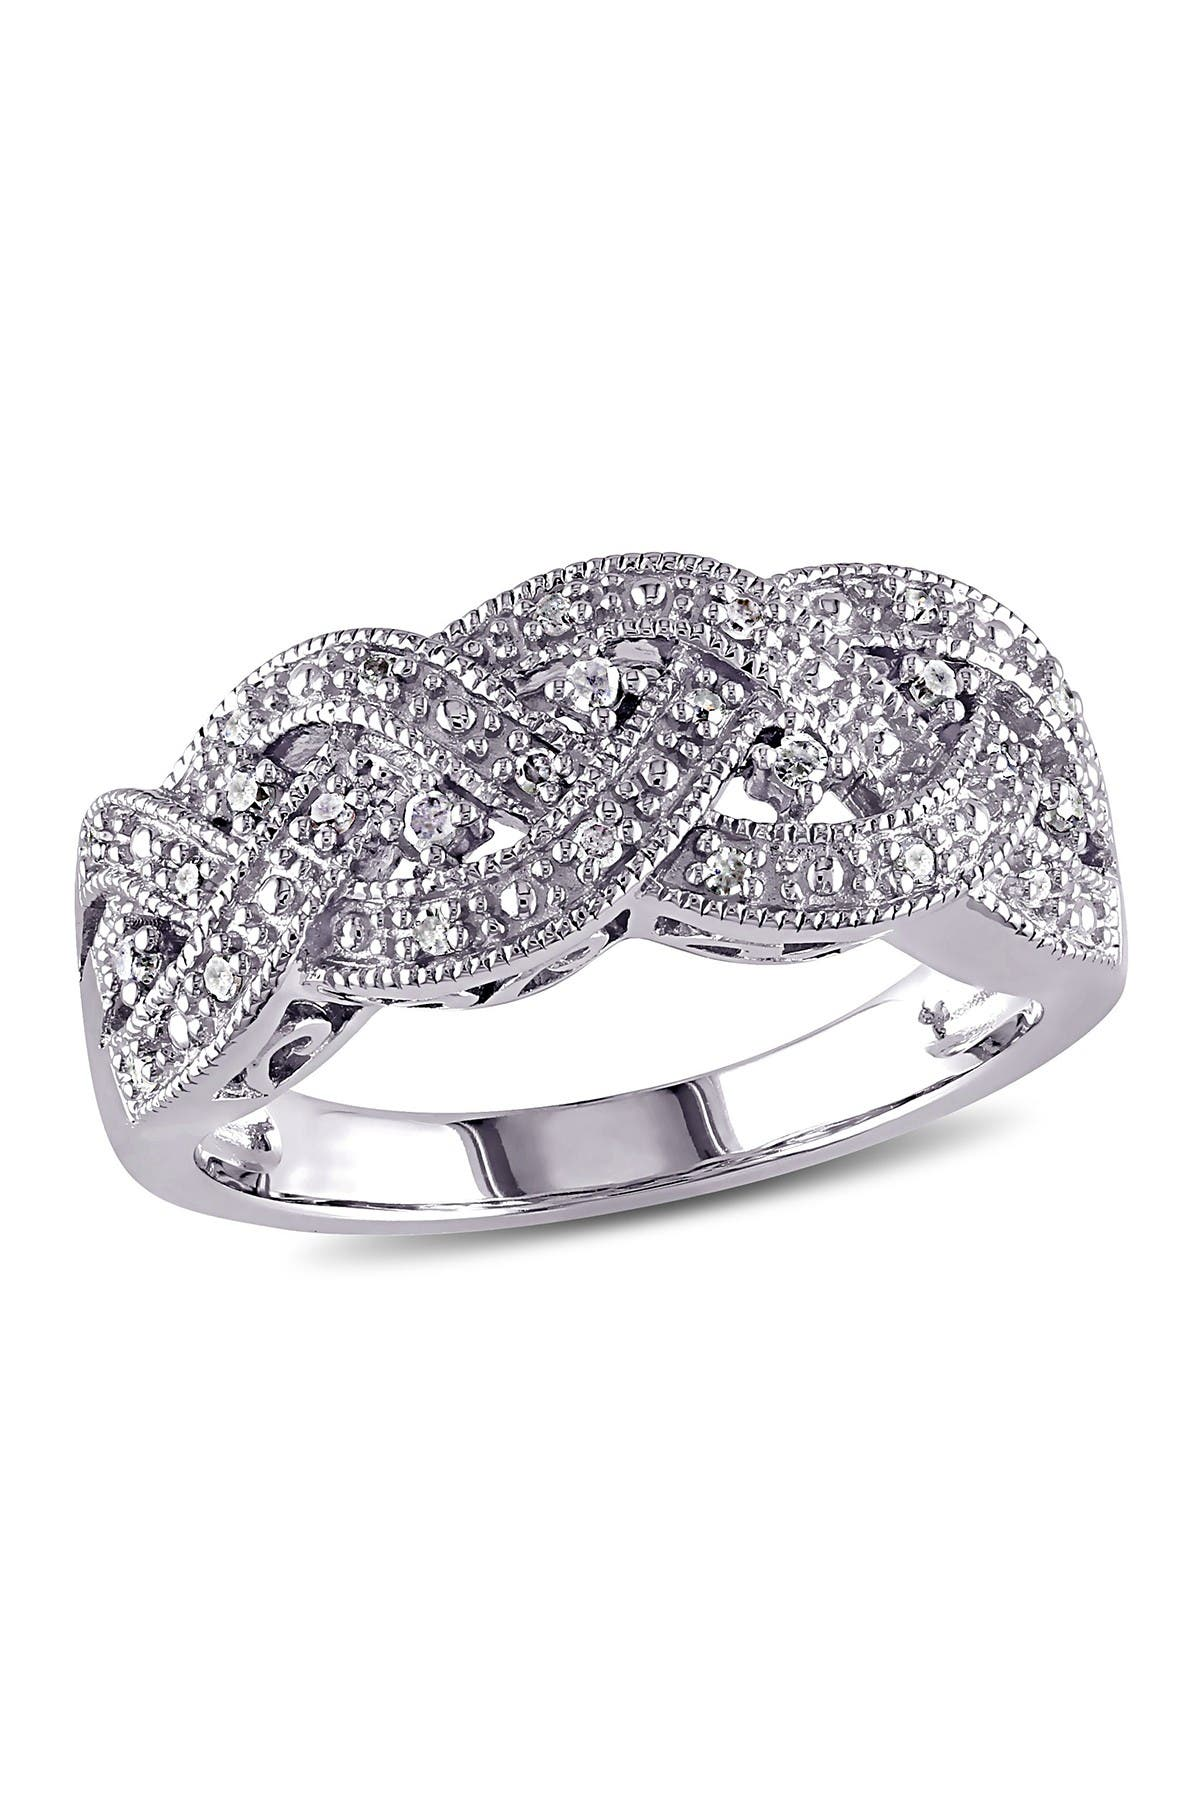 Image of Delmar Sterling Silver Diamond Woven Ring - 0.13 ctw